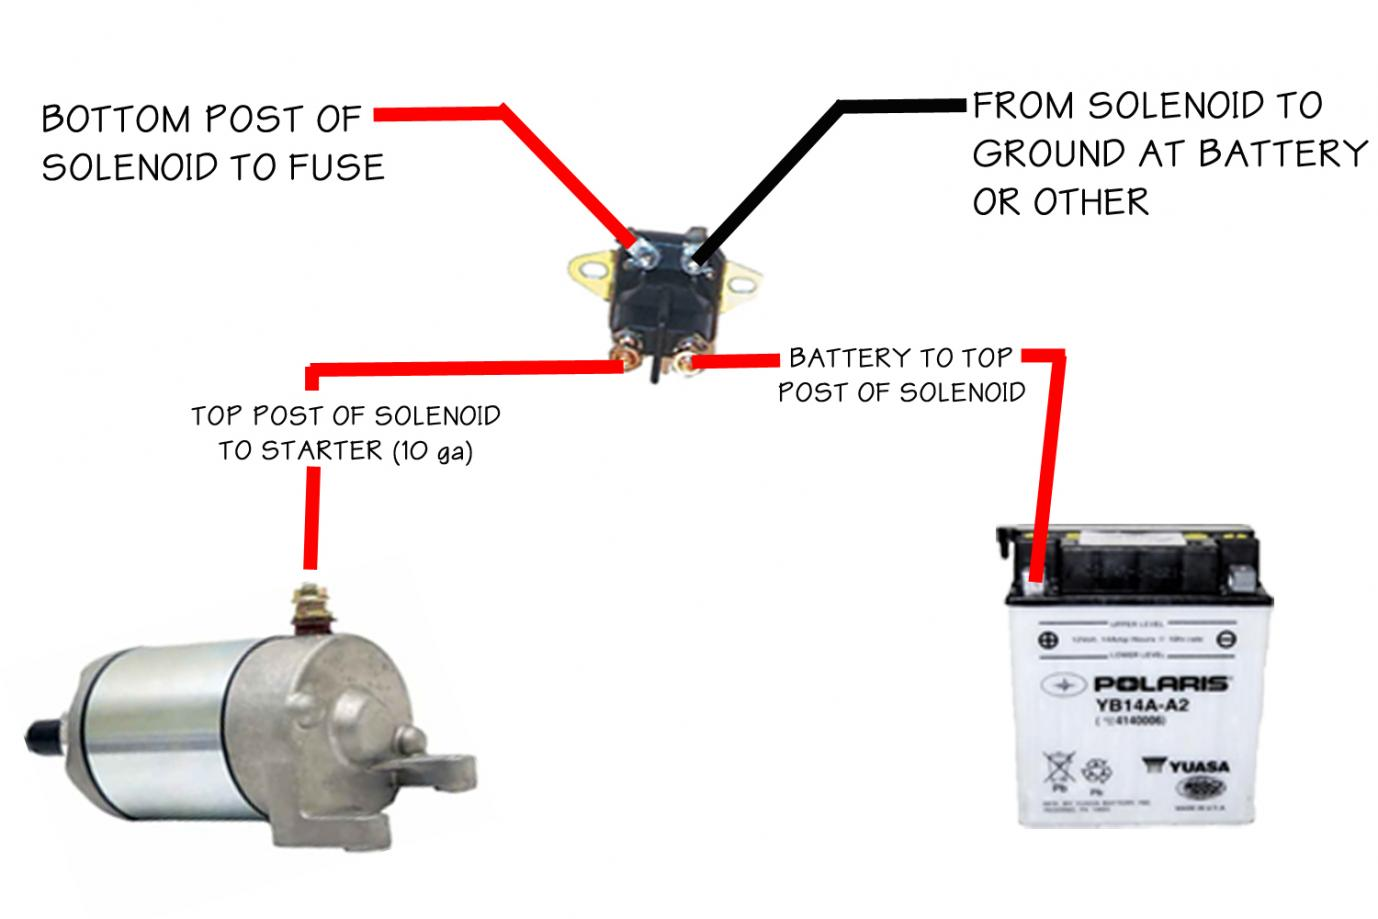 solenoid wiring diagram solenoid wiring diagrams online description polaris atv winch wiring diagram wire diagram on warn atv winch wiring diagram